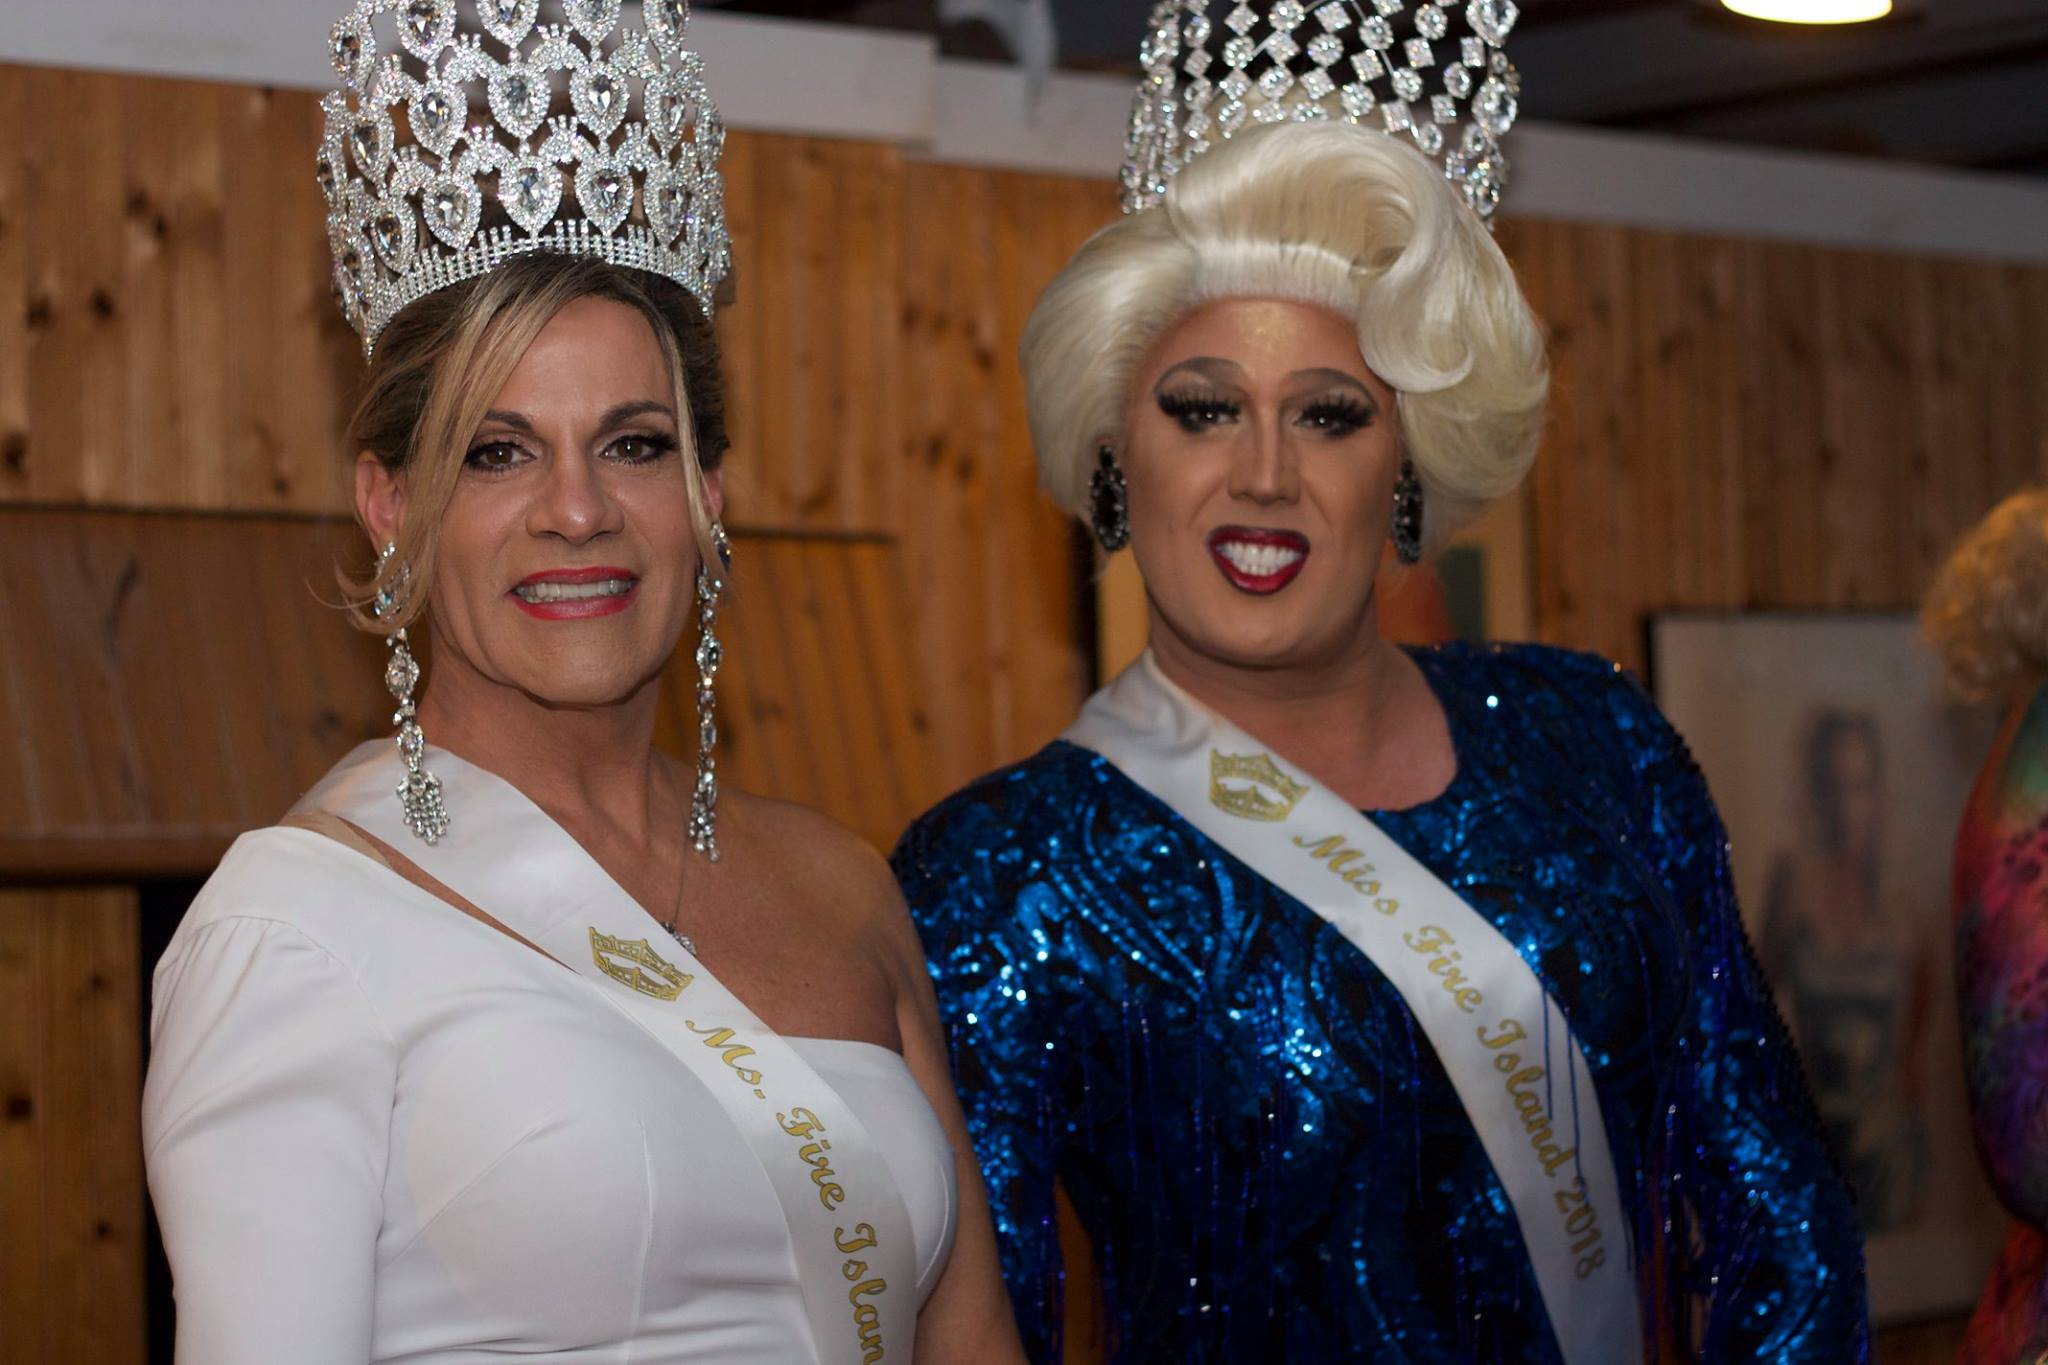 Miss Fire Island Pageant contestants wearing tiaras posing for a photo